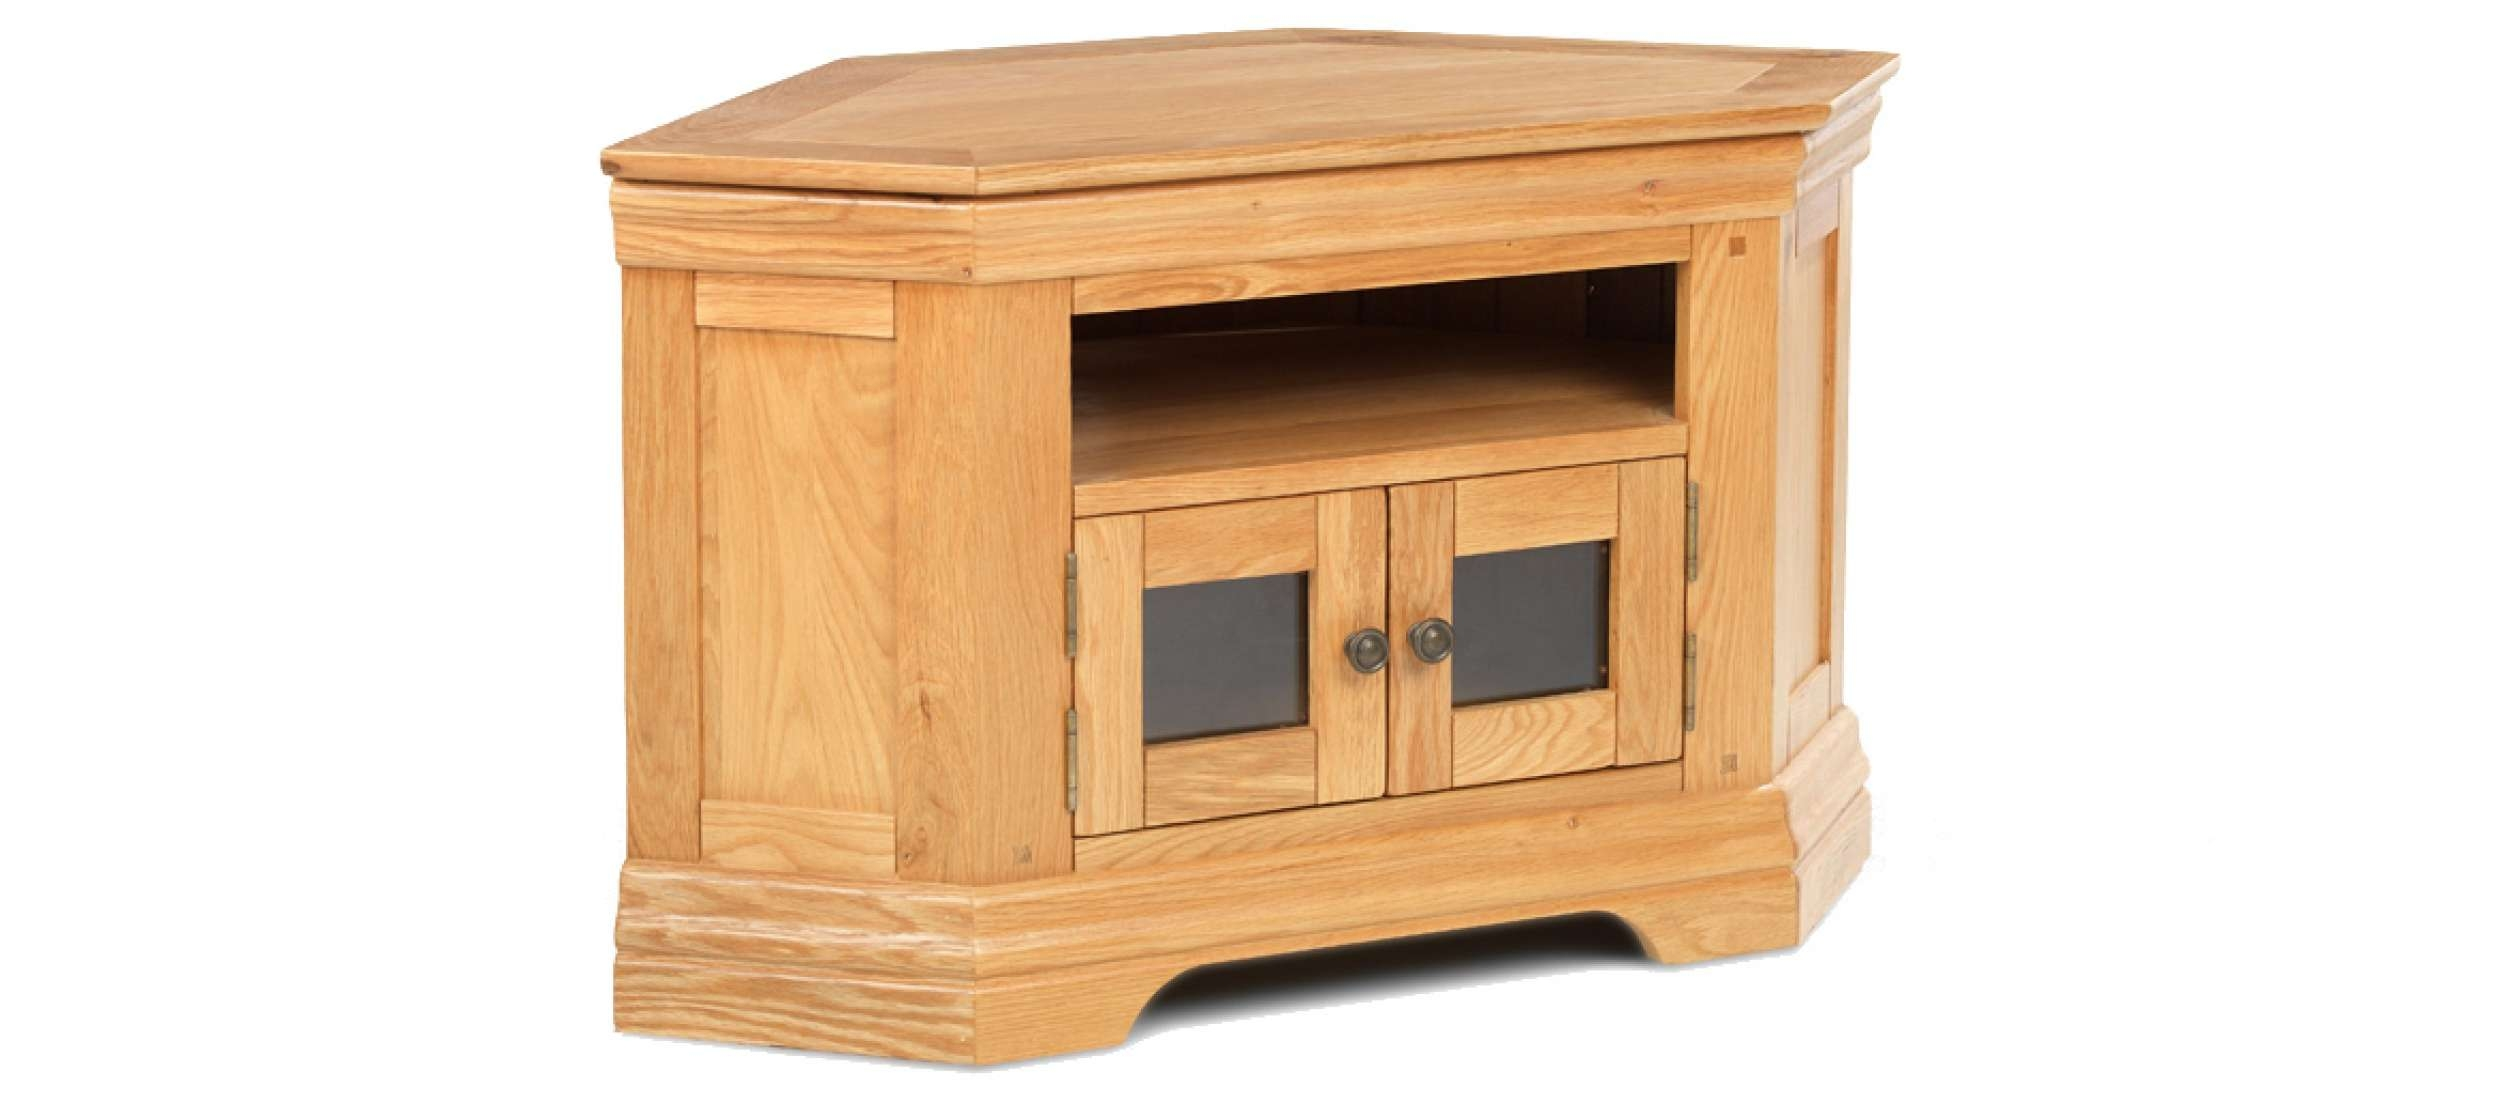 Constance Oak Corner Tv Cabinet | Quercus Living With Regard To Tv Cabinets Corner Units (View 8 of 20)